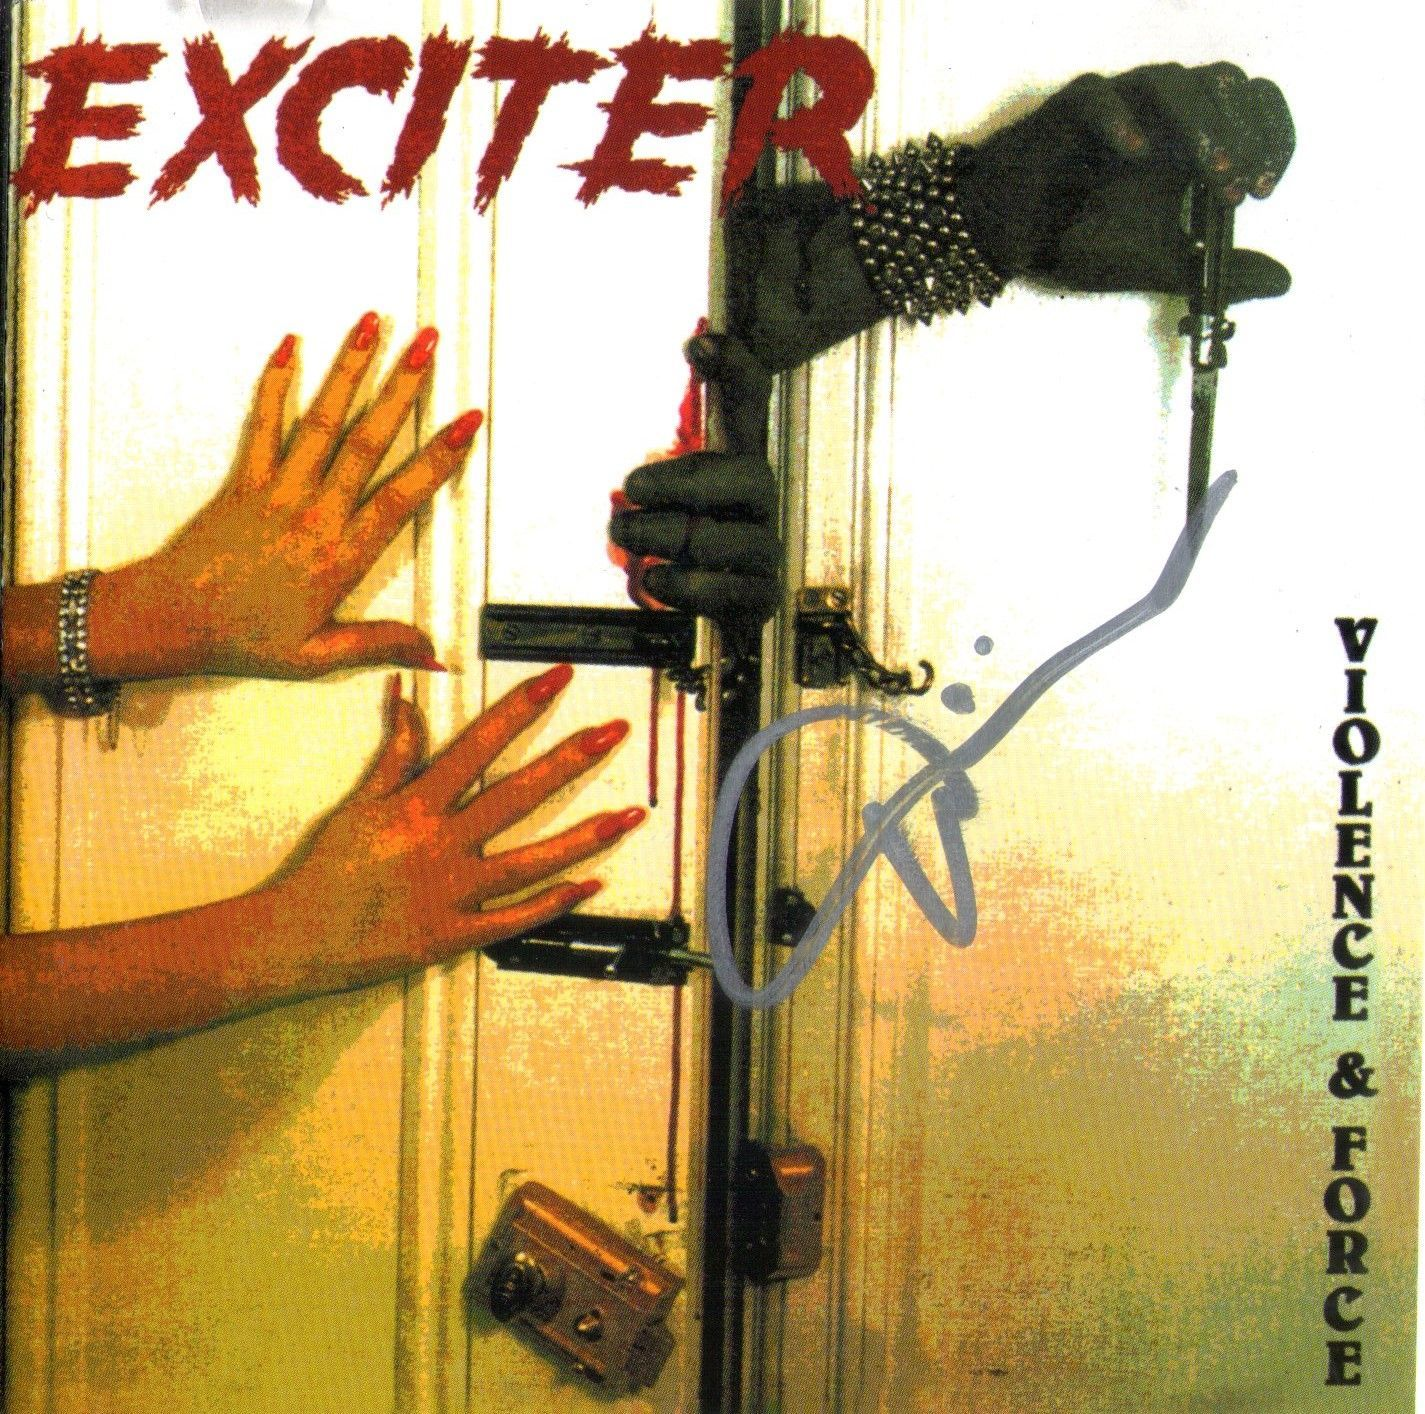 CD Exciter Importado – Violence & Force - Autografado